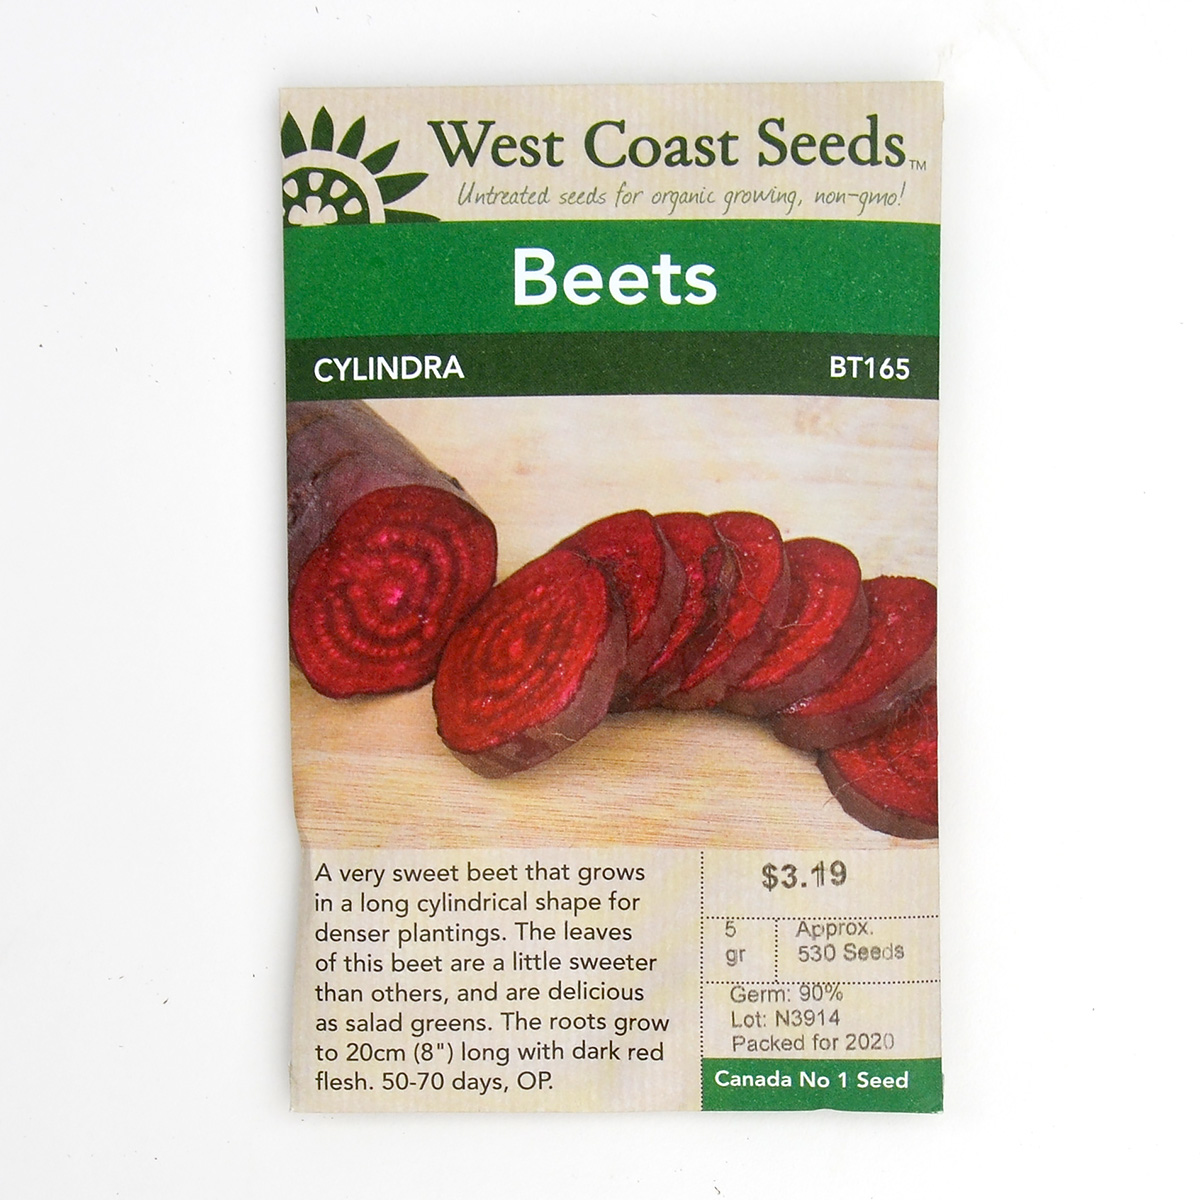 Beets Cylindra Seeds BT165